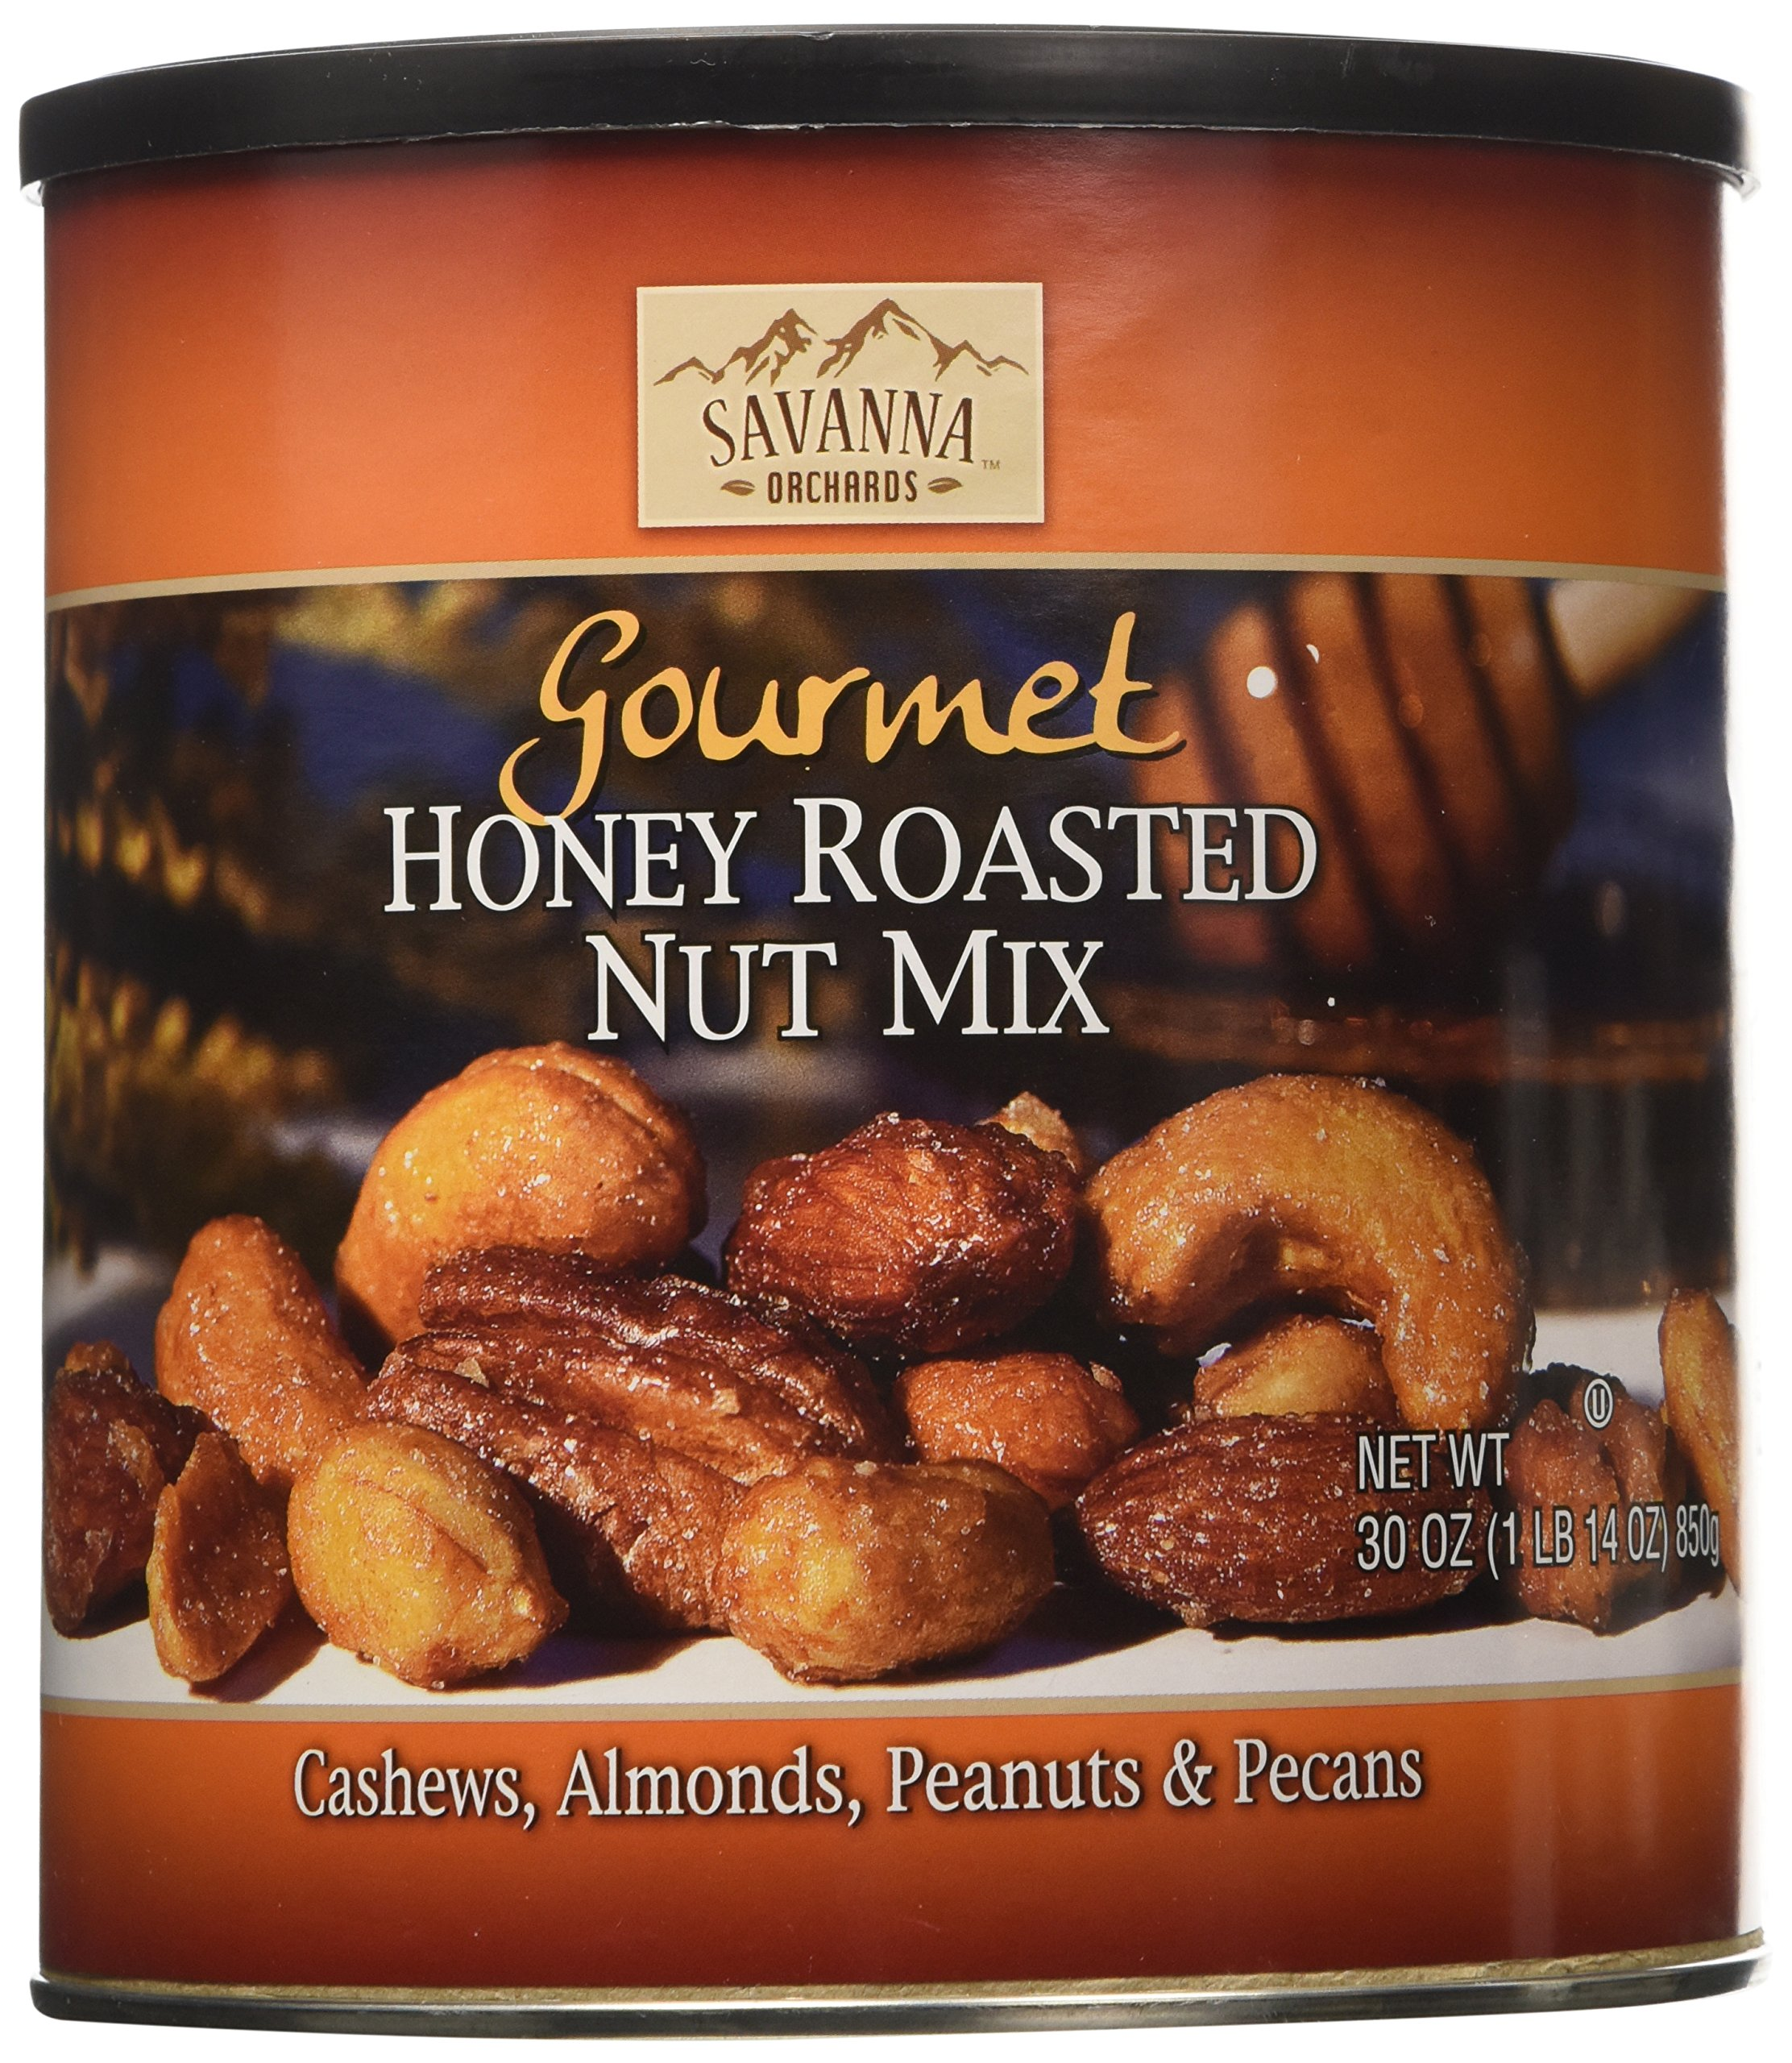 Savanna Orchards Gourmet Honey Roasted Nut Mix 30 oz. Can